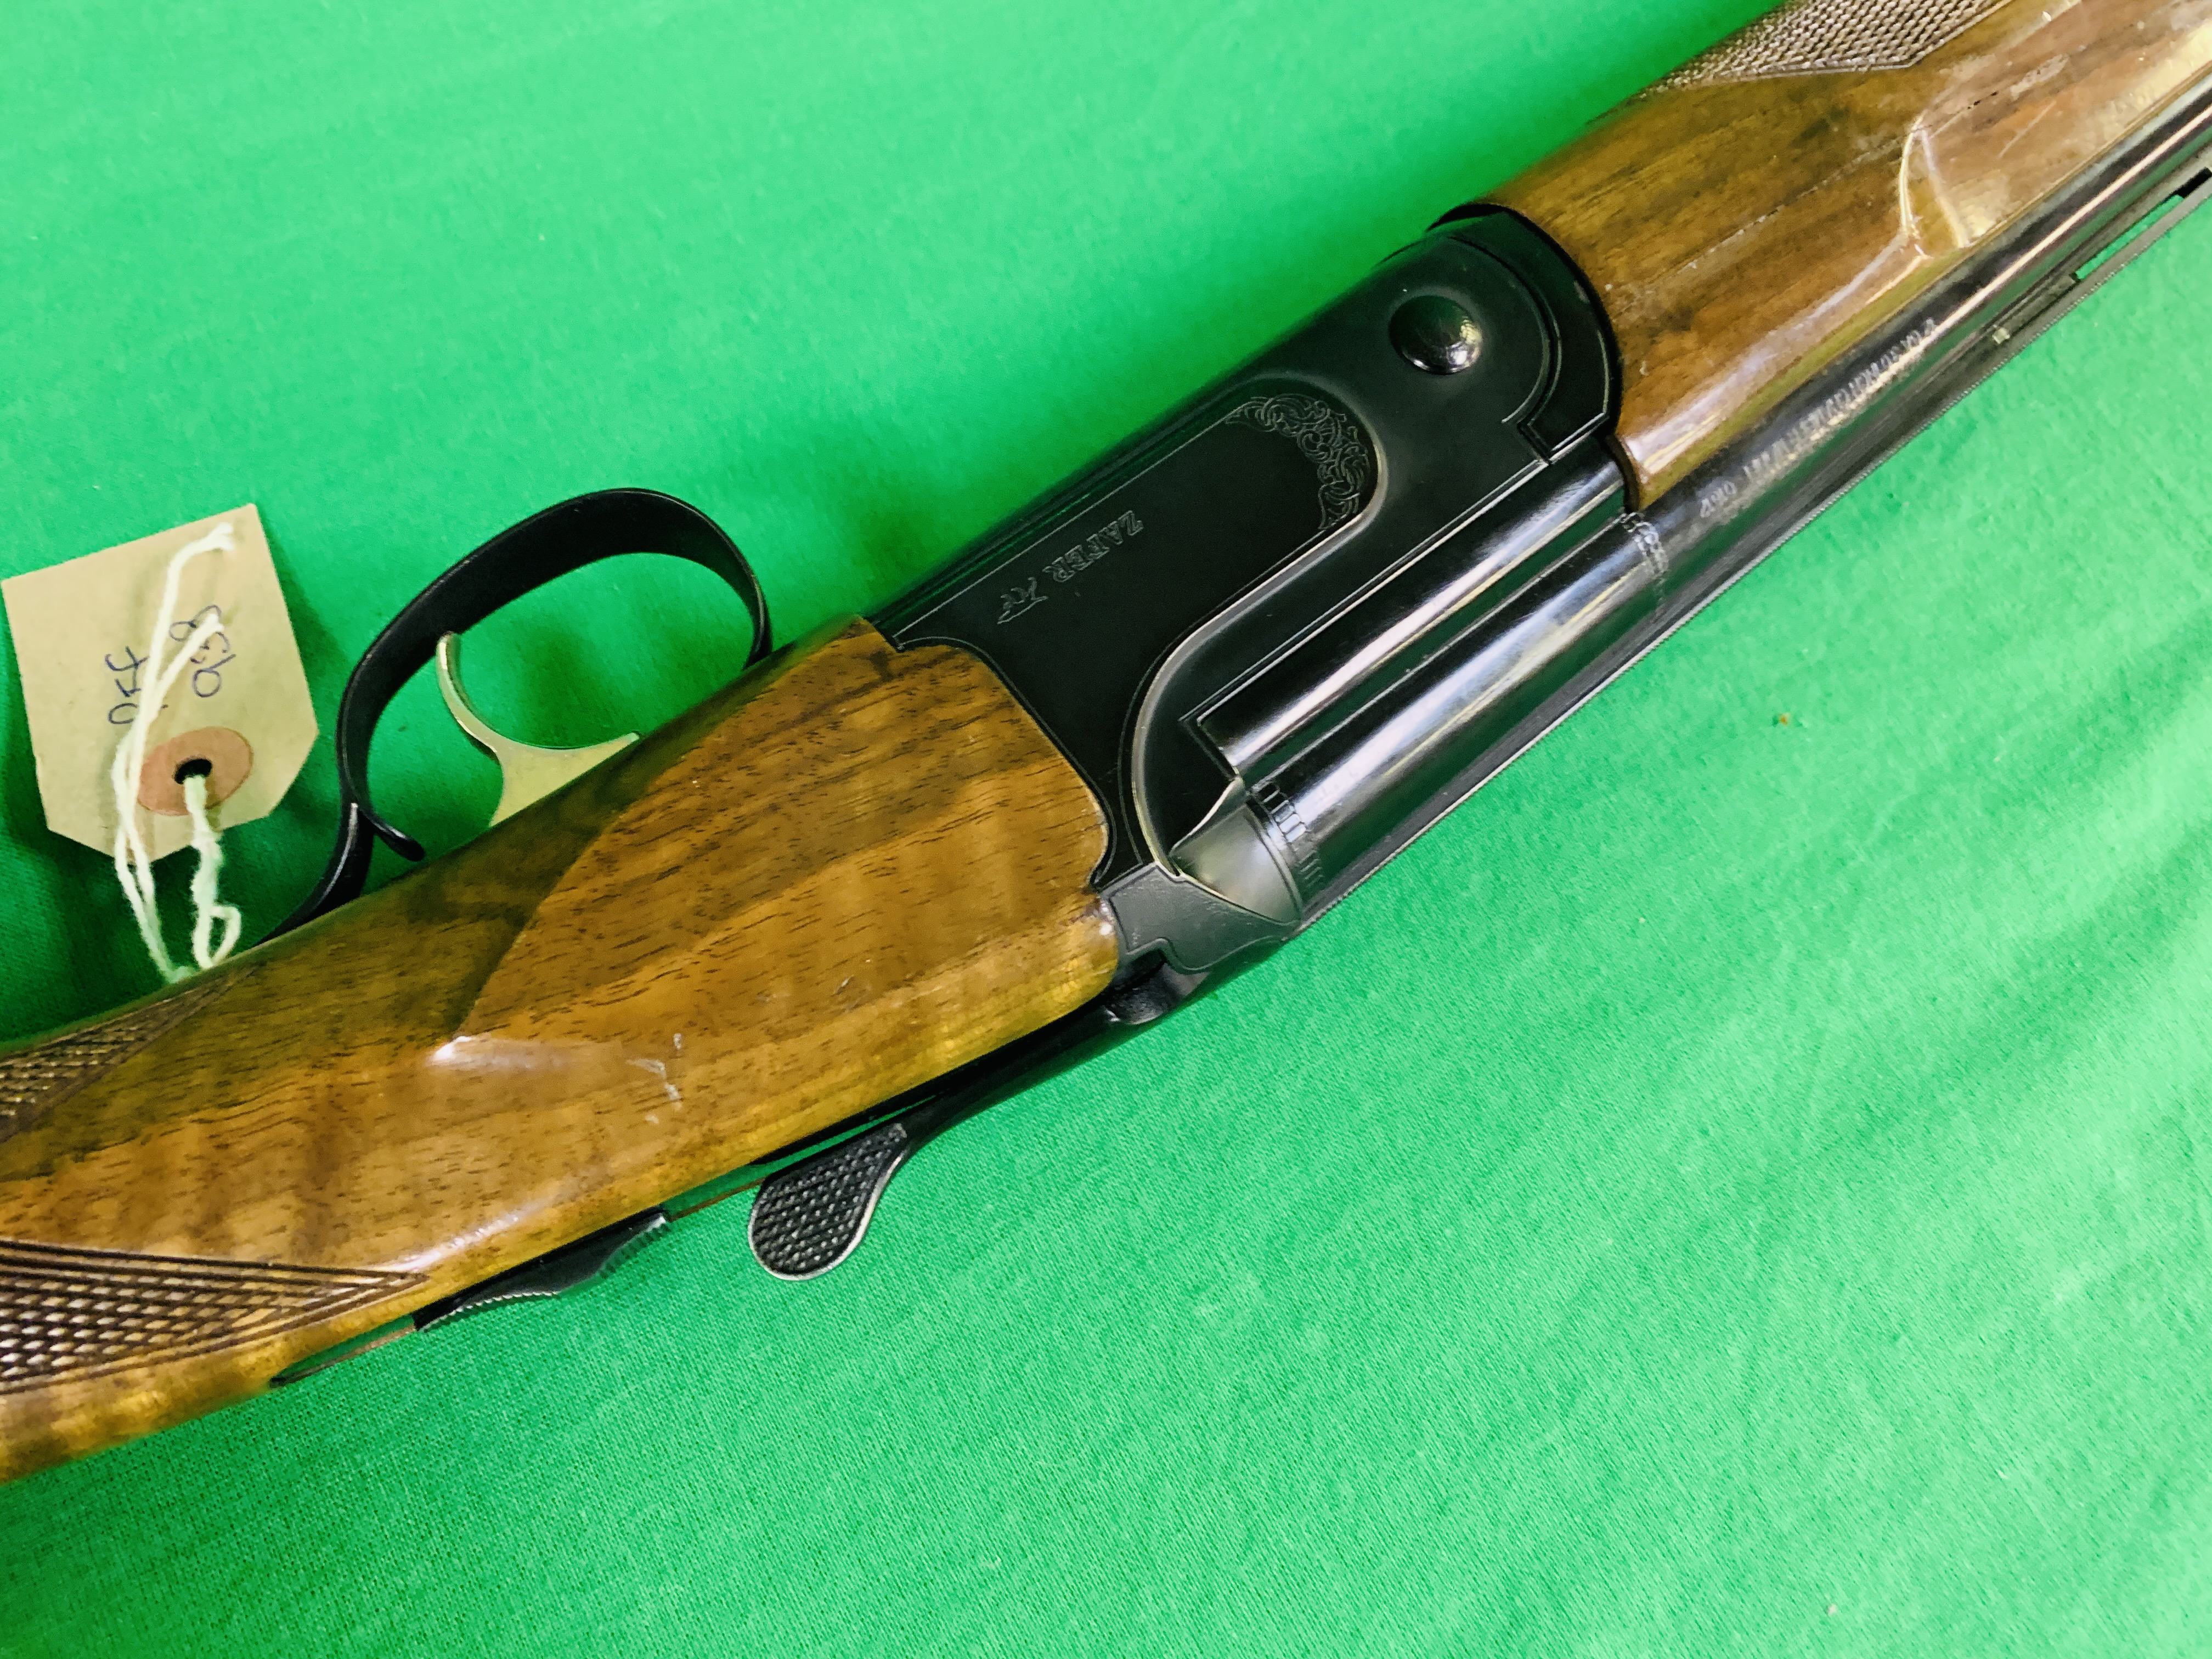 ZAFER MODEL 01612 12 BORE OVER AND UNDER SHOTGUN # 01483, SELECTABLE SINGLE TRIGGER, NON EJECTOR, - Image 7 of 8